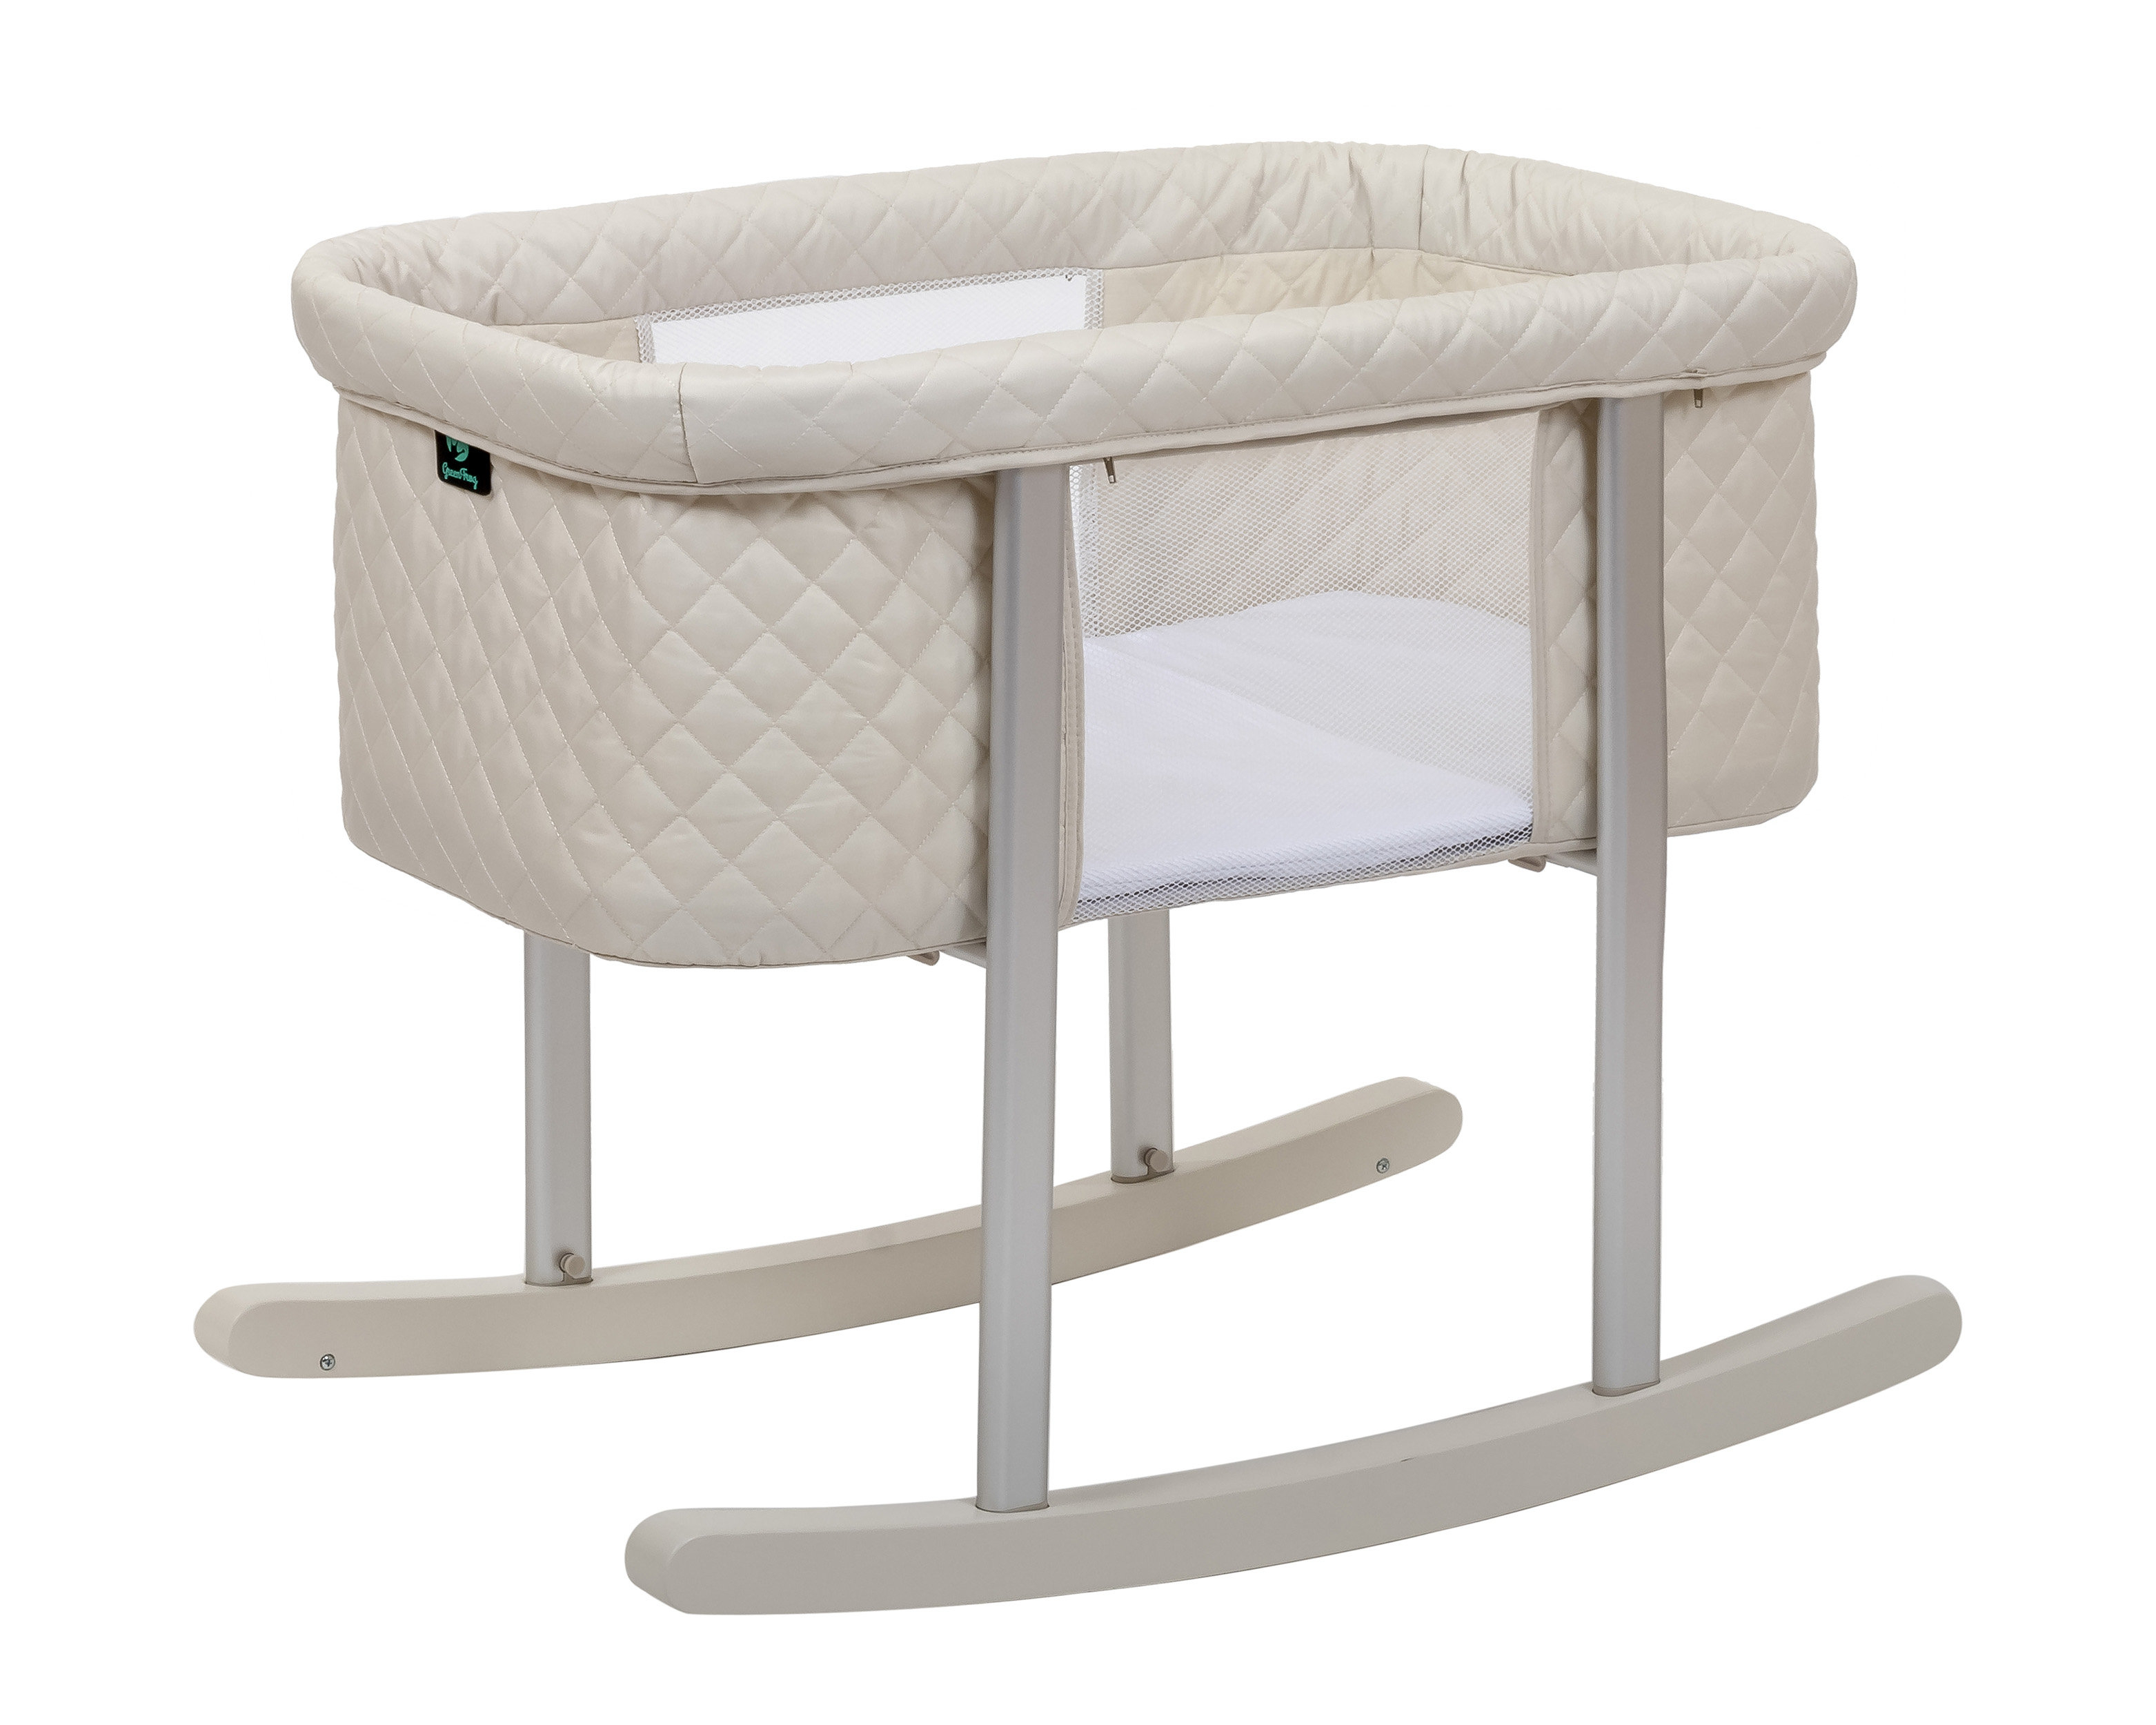 Mack & Milo Gaetan Diamond Baby Bassinet | Wayfair In Bailey Mist Track Arm Skirted Swivel Gliders (Image 16 of 20)